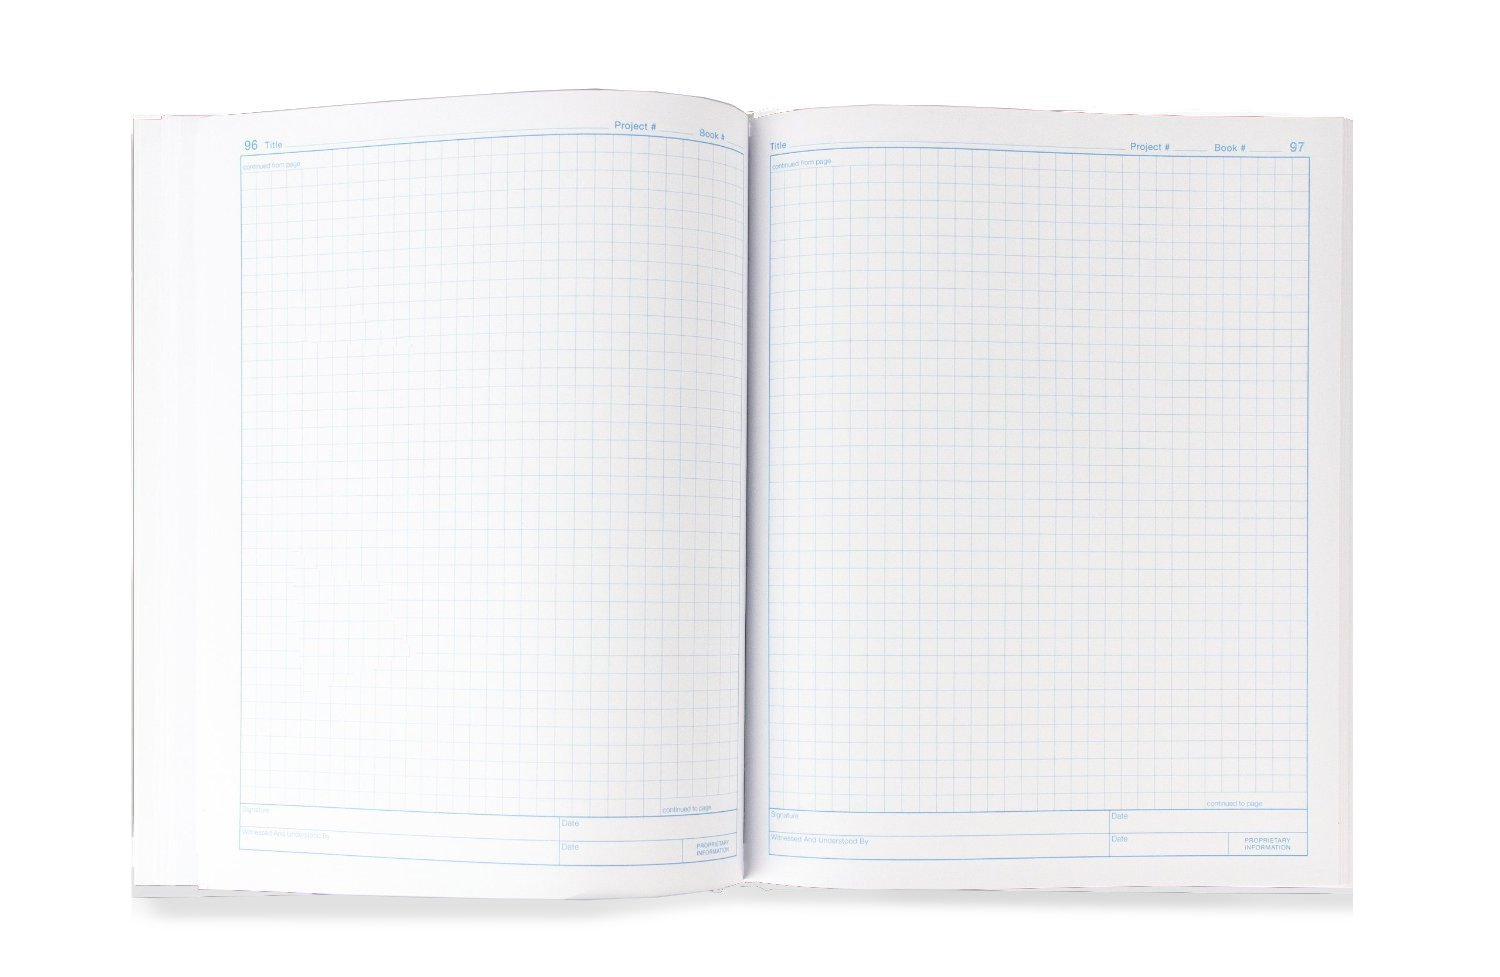 Vela Sciences Advanced Softcover Lab Notebook, 9.25 x 11.75 inches, 144 Pages (Grid+) by Vela Sciences (Image #4)